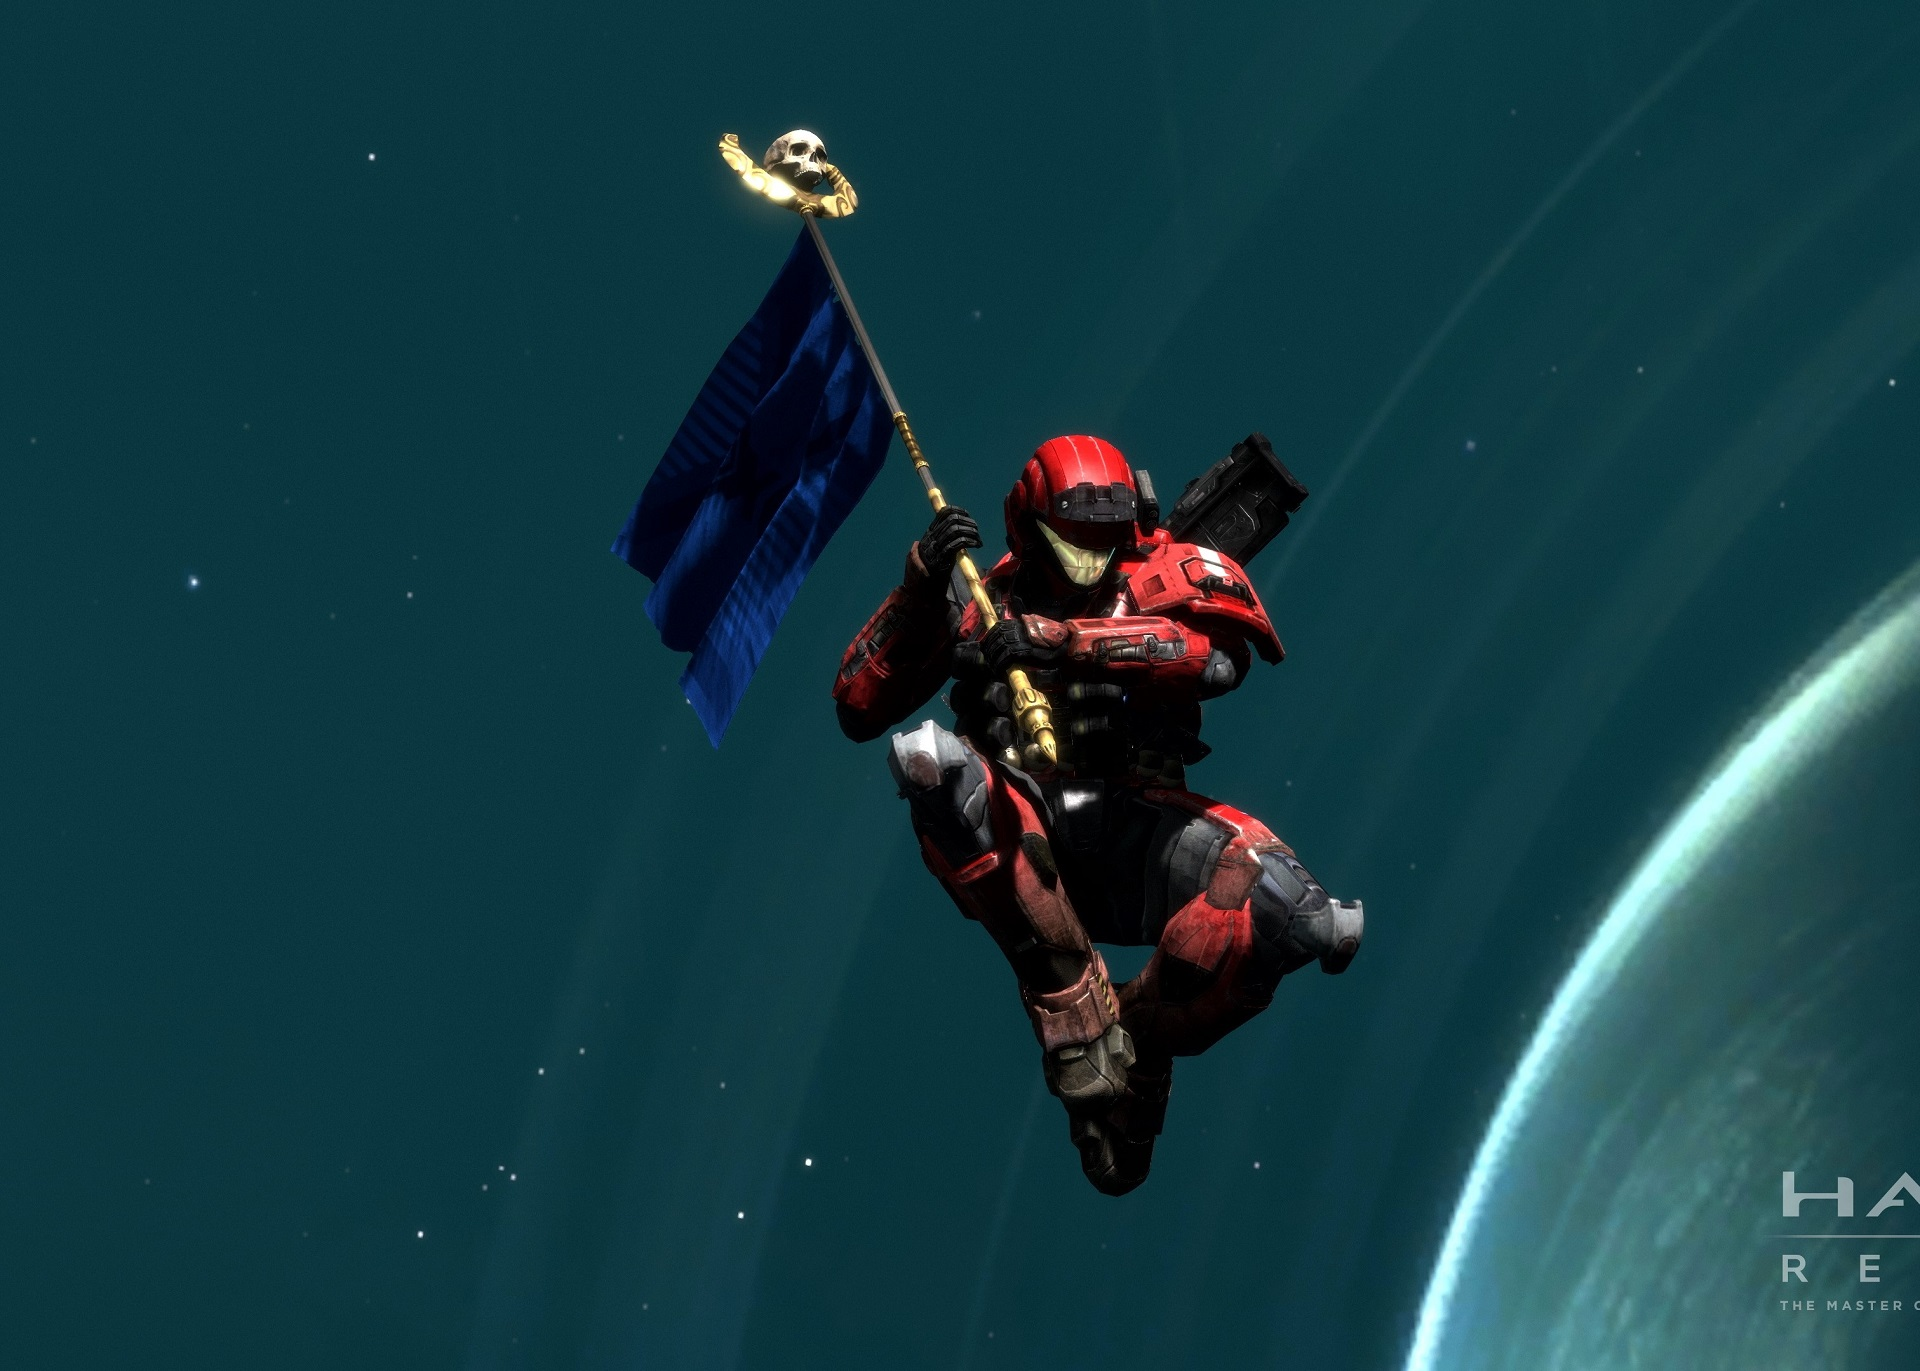 Halo Reach Mcc Ranking System Guide The Ranking System